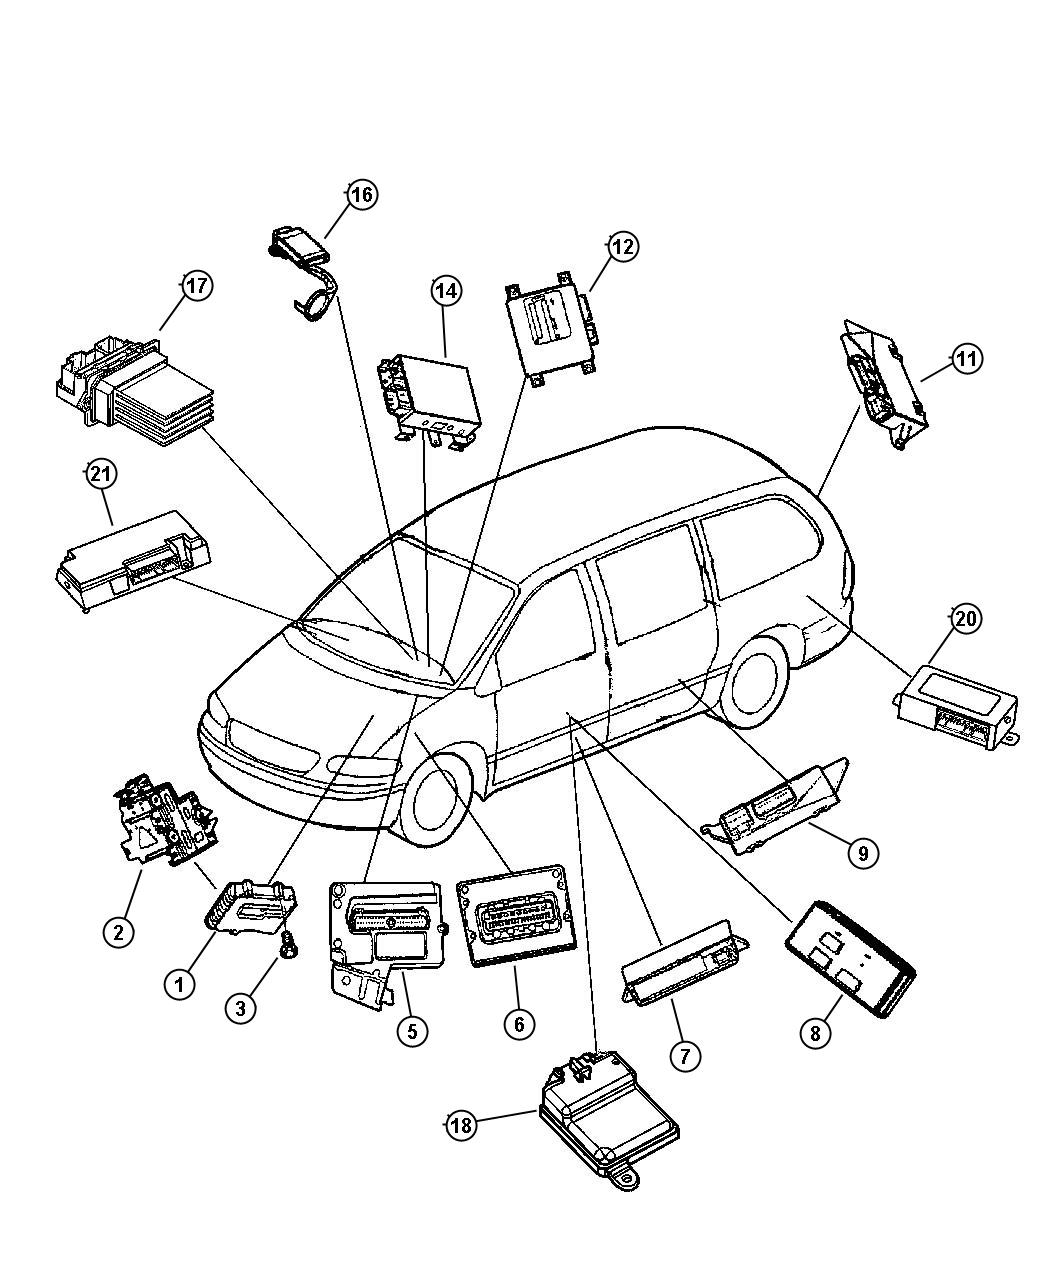 2005 Dodge Grand Caravan Wiring Harness Library Park Diagram 2003 Suspension